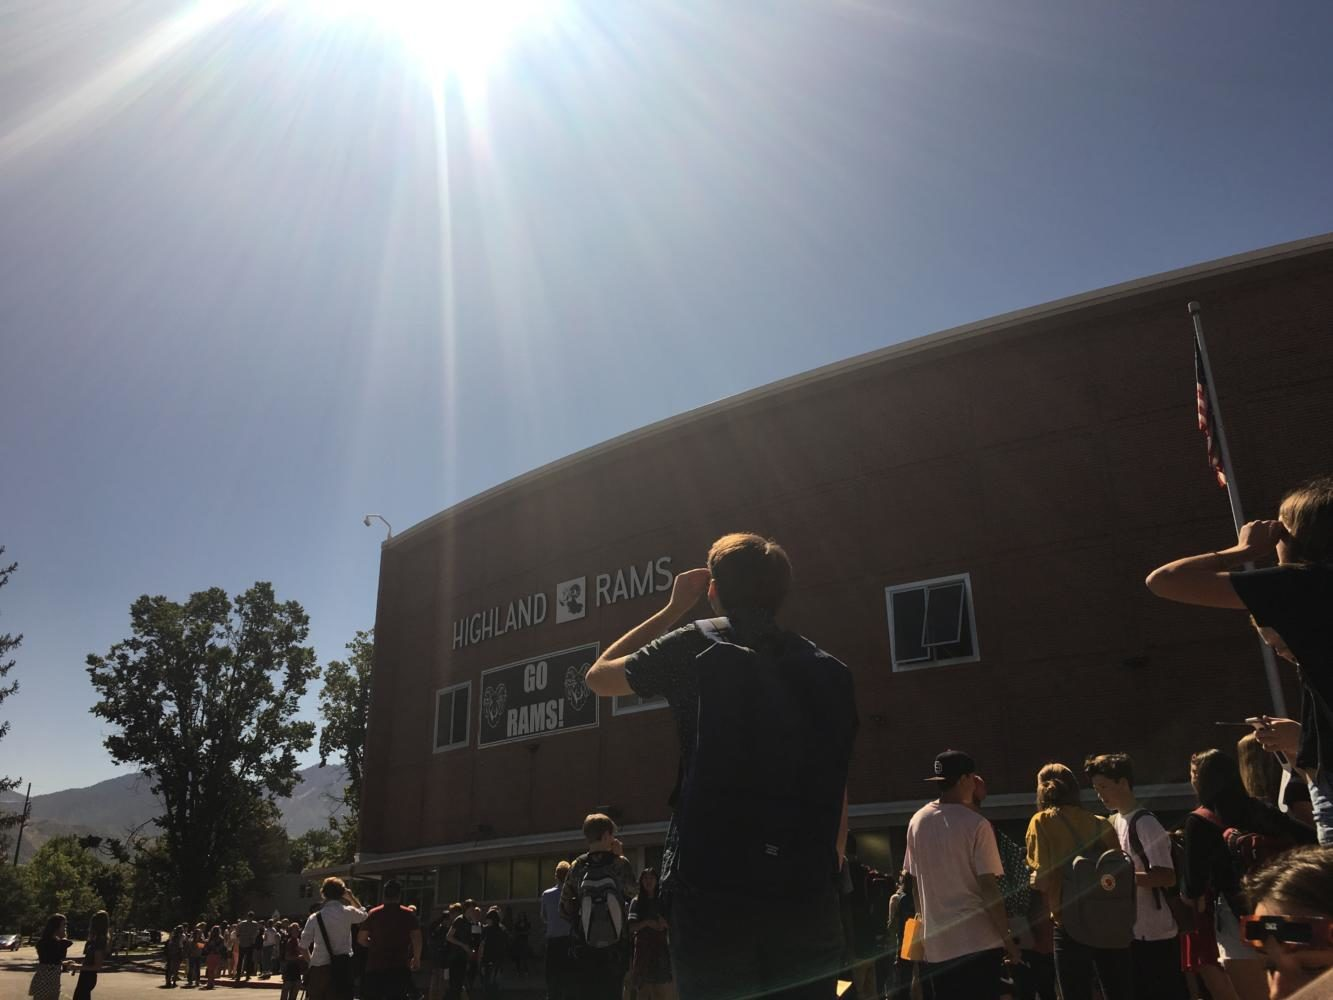 Highland+students+watch+as+solar+eclipse+becomes+visible.++